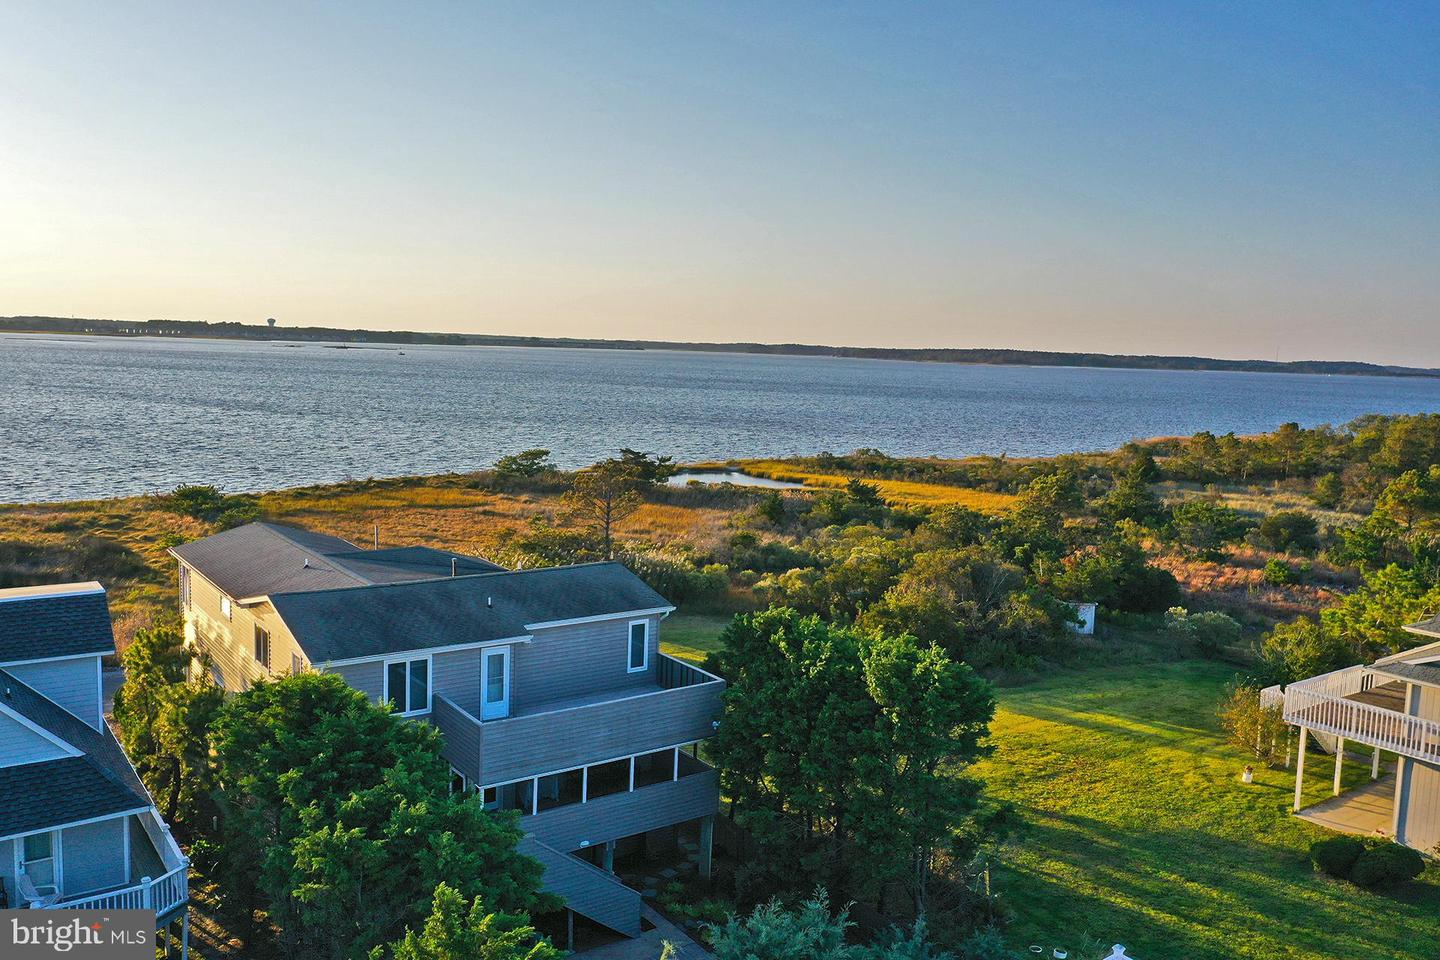 DESU171840-304367803950-2020-11-11-11-43-33 1707 Bay St | Fenwick Island, DE Real Estate For Sale | MLS# Desu171840  - Ocean Atlantic